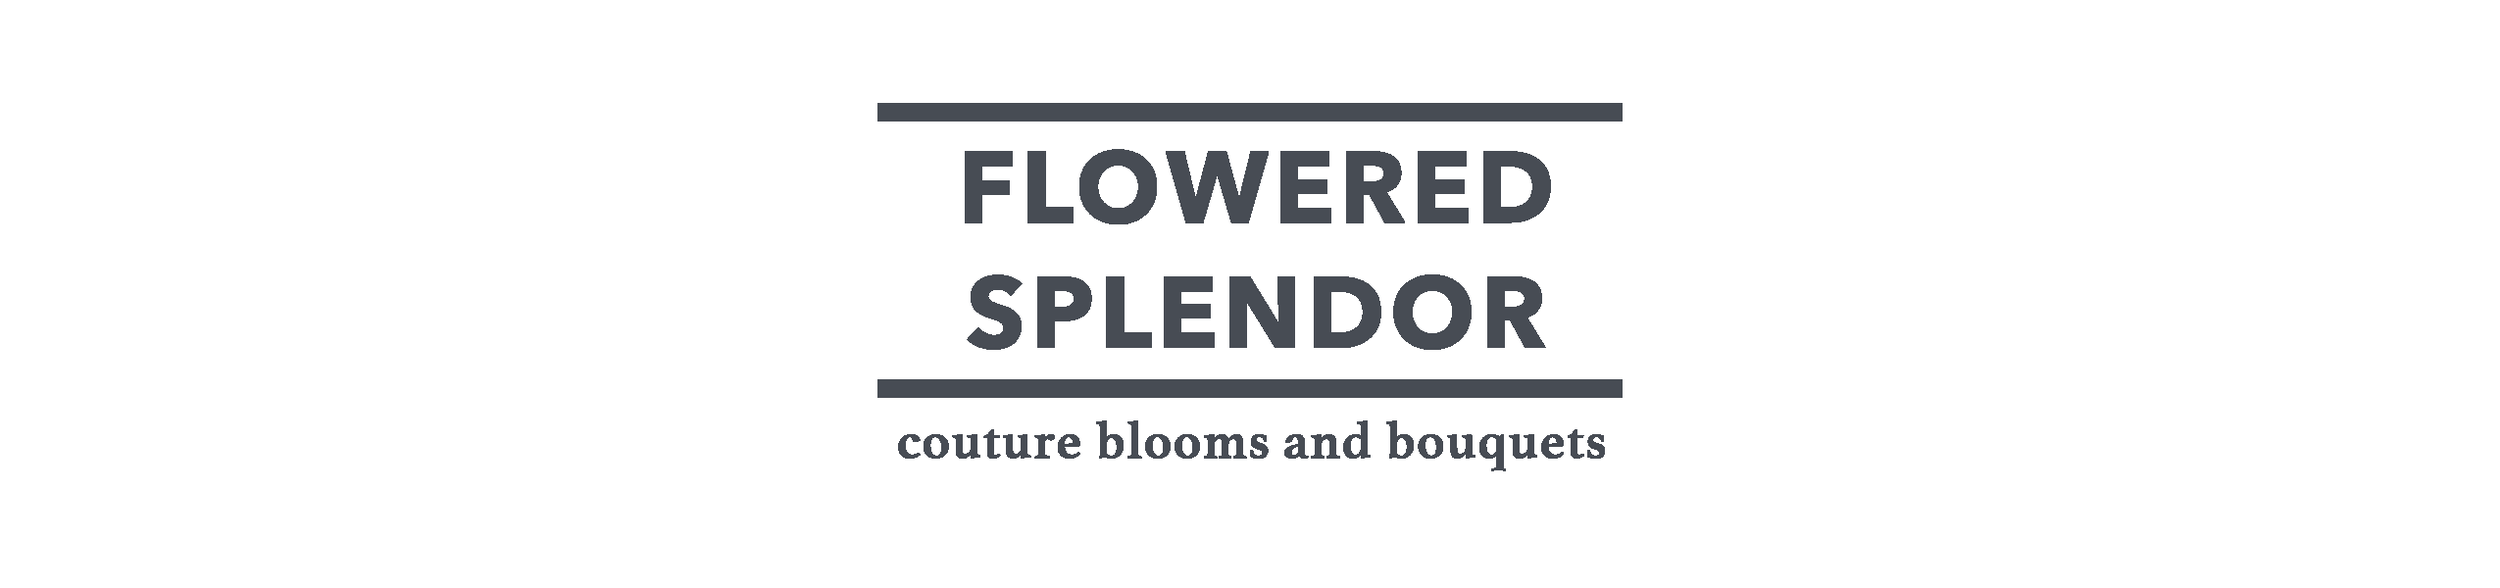 Flowered Splendor